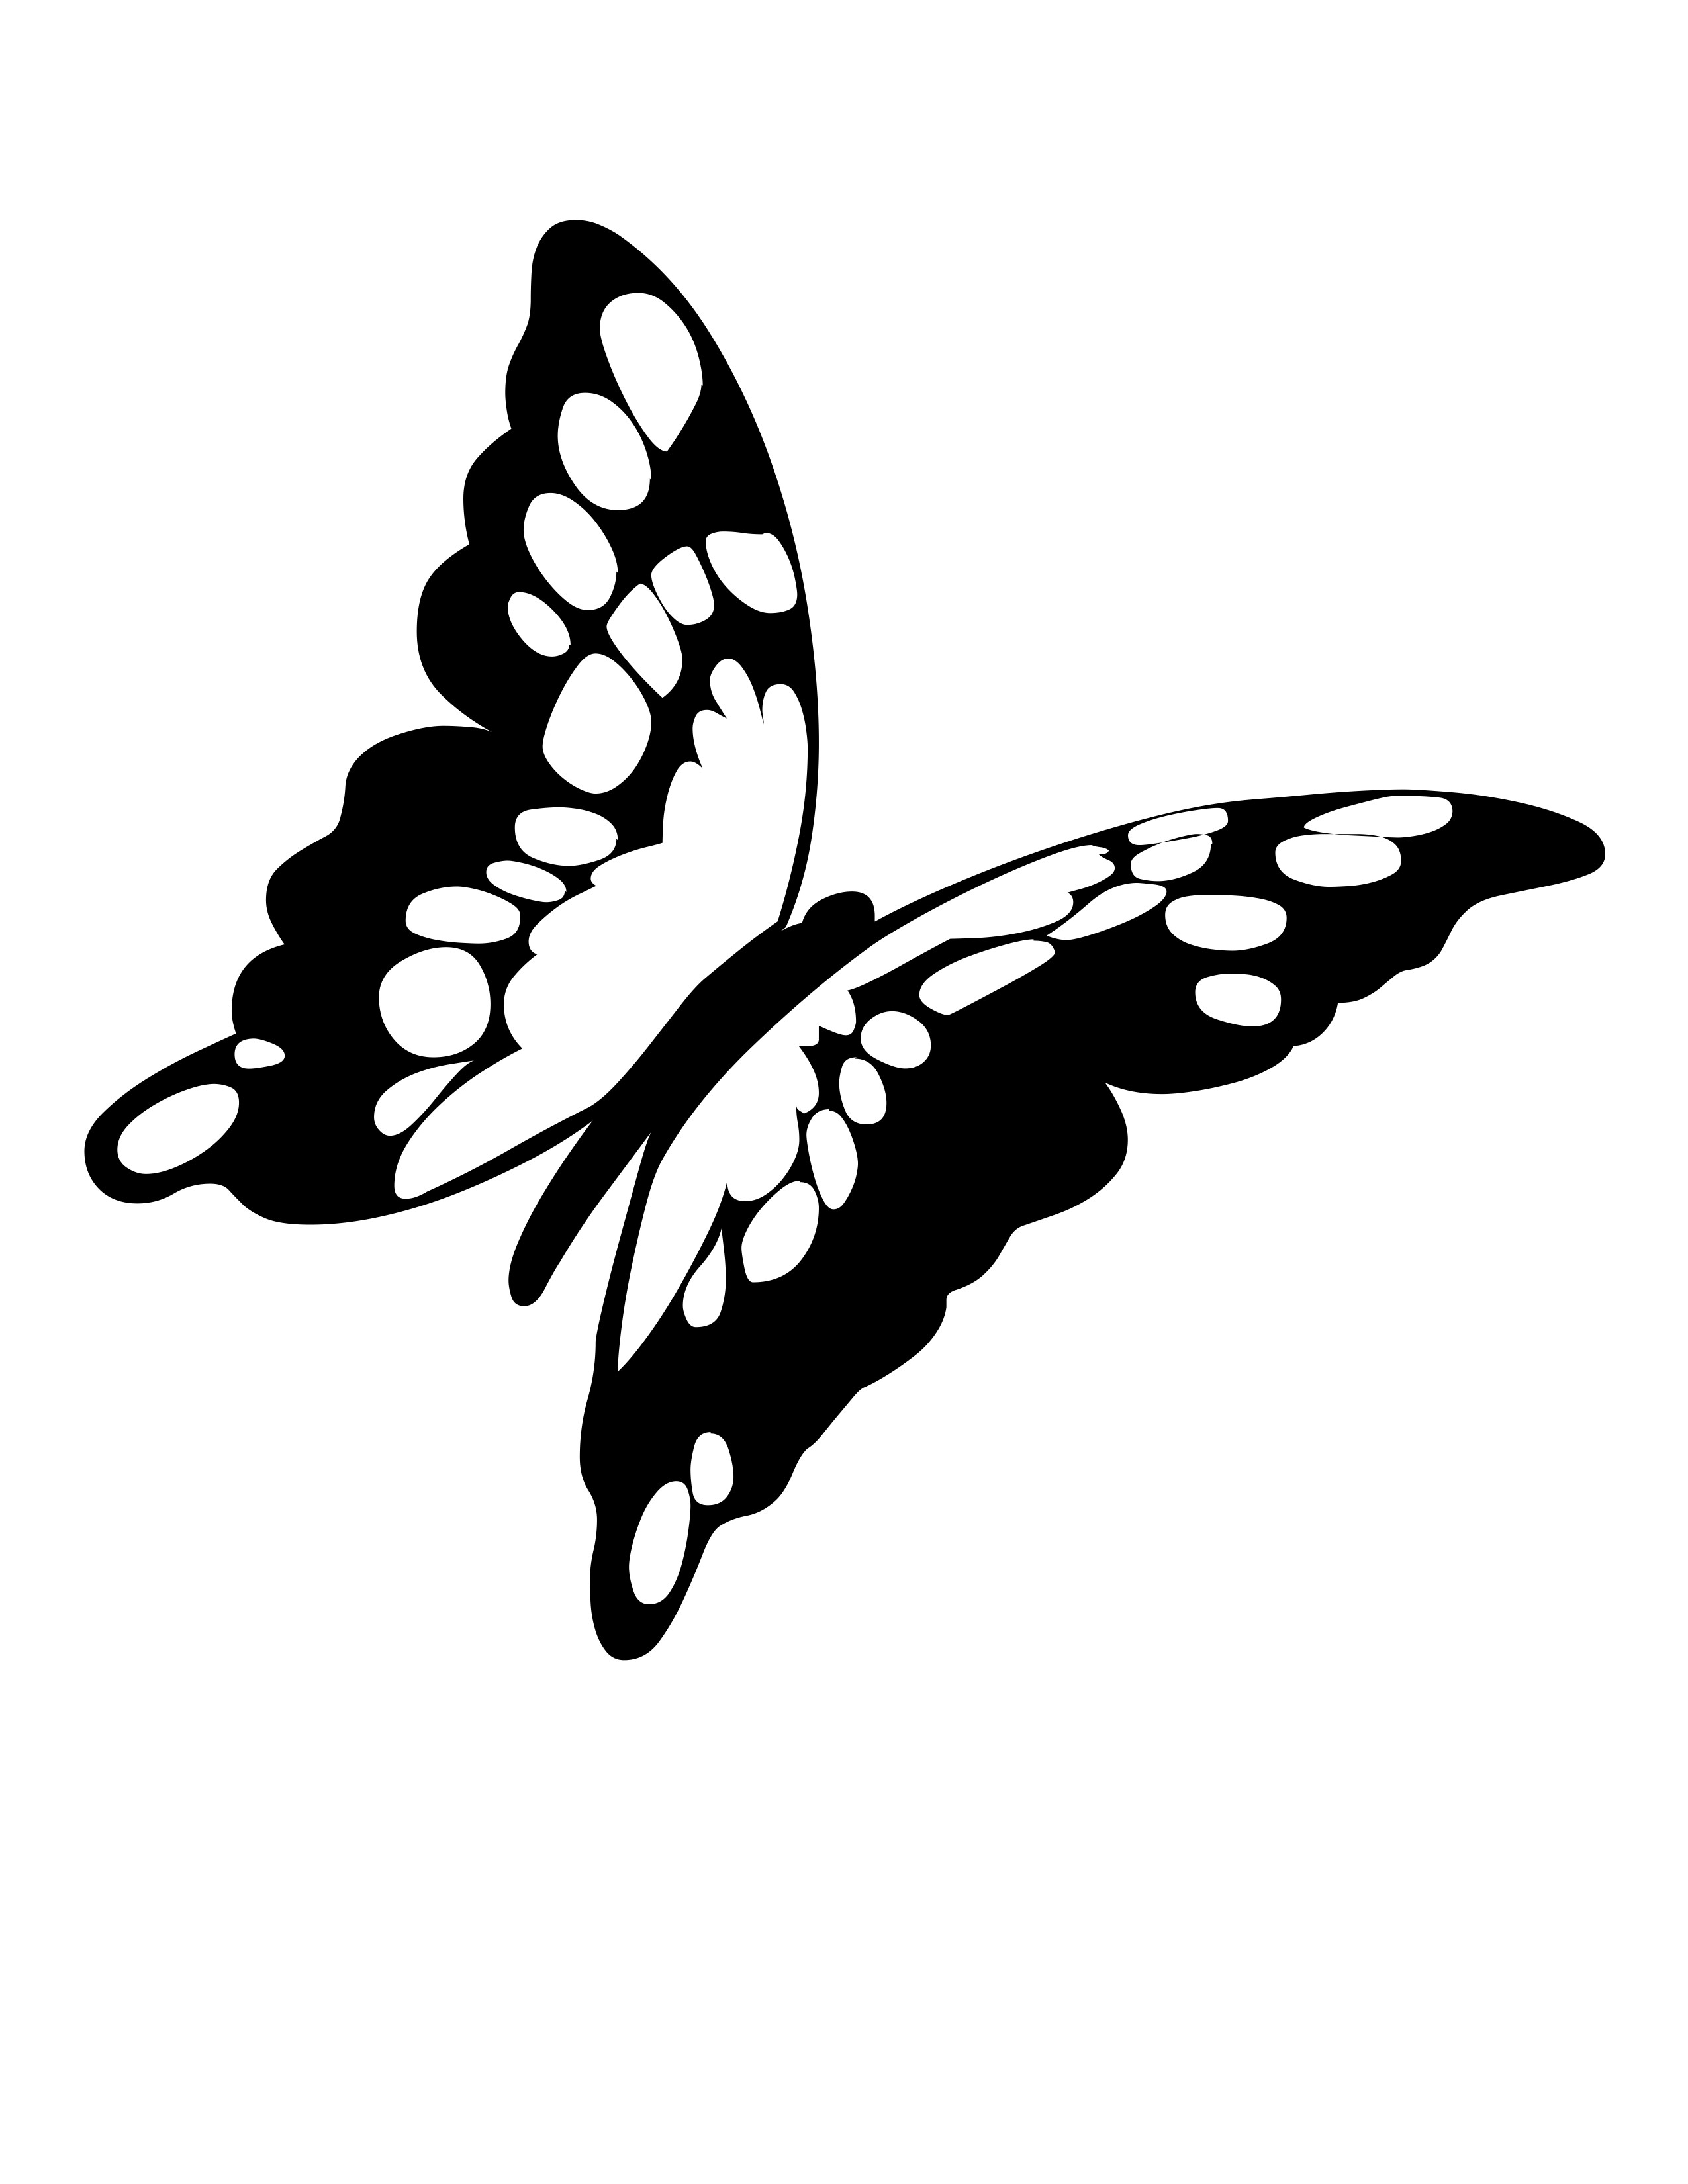 Free Monarch Butterfly Outline Download Free Clip Art Free Clip Art On Clipart Library